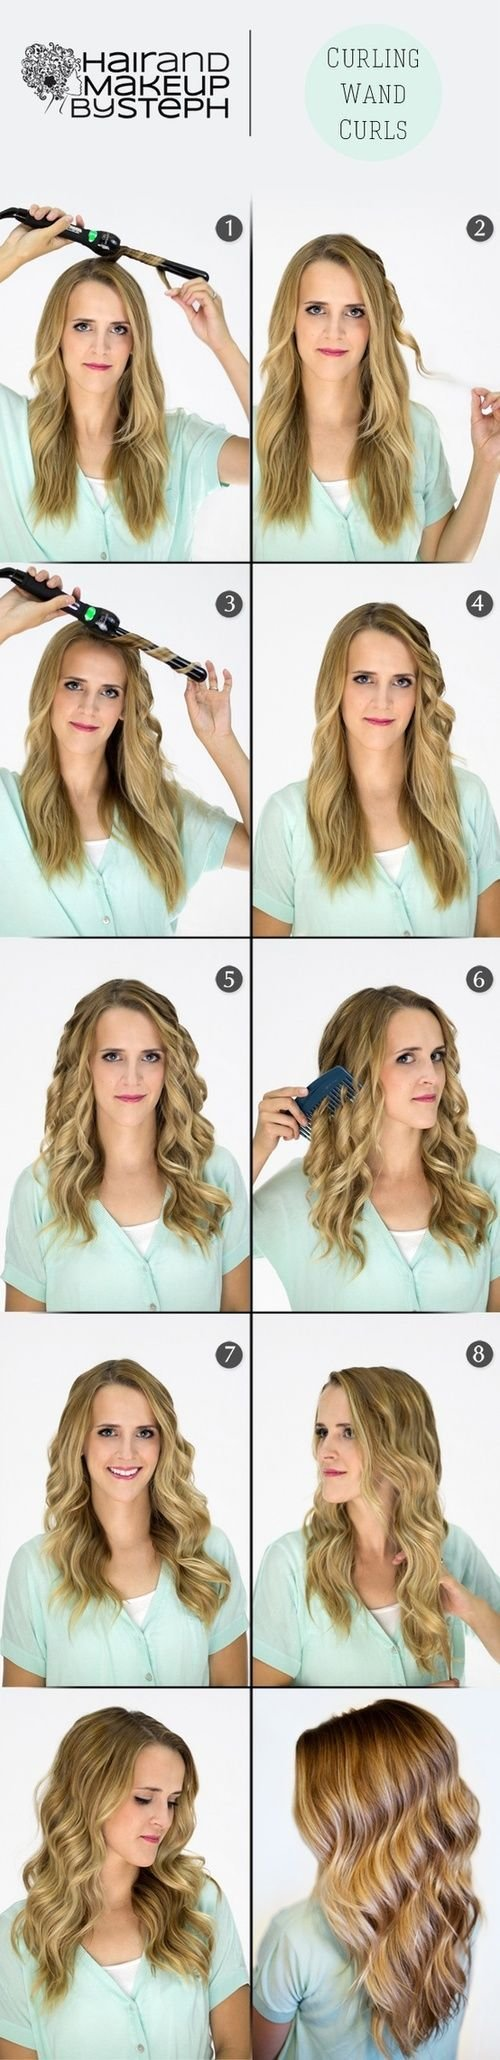 New 1000 Ideas About Curling Wand Curls On Pinterest Easy Ideas With Pictures